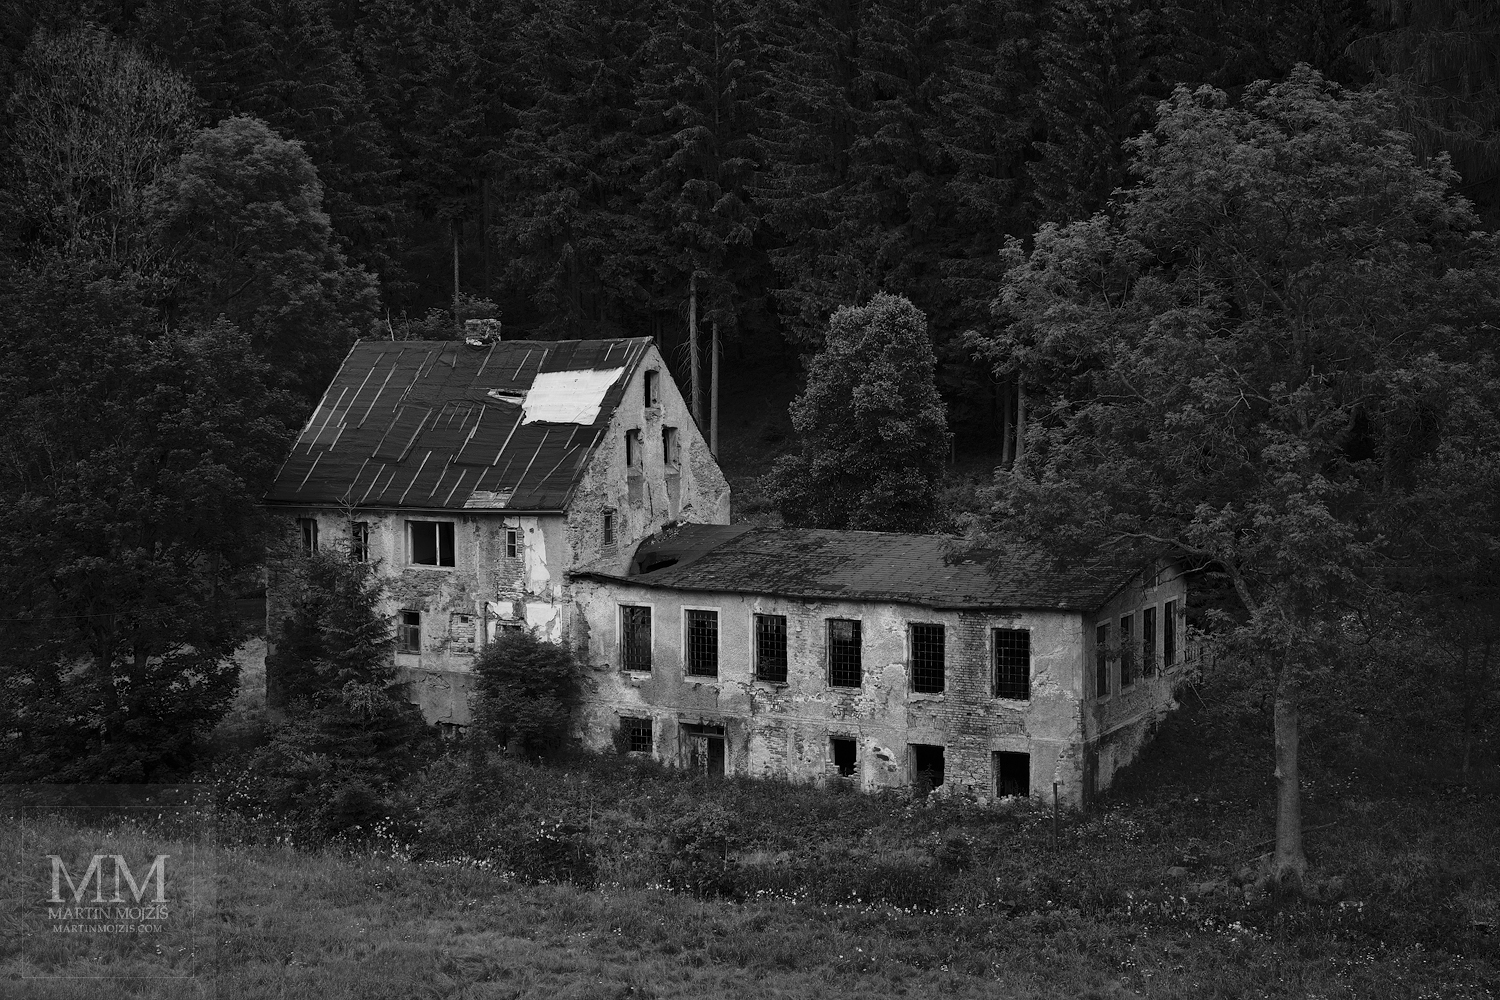 Fine Art black and white large format photograph of the old house in a valley. Martin Mojzis.